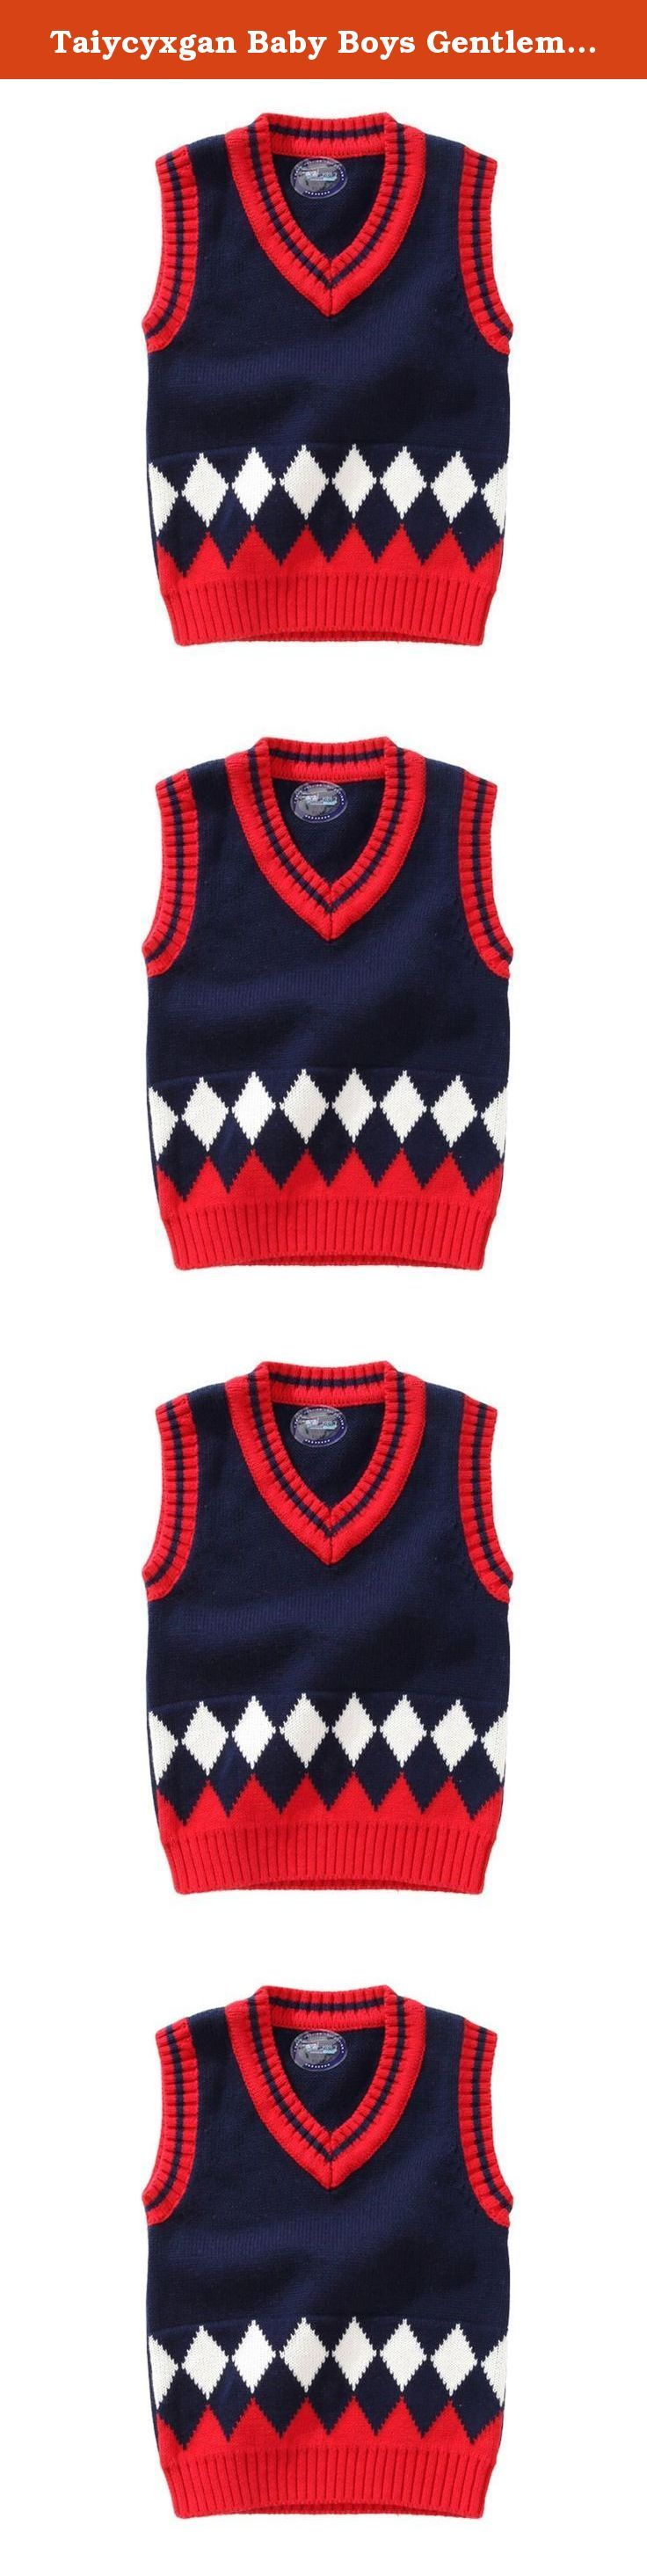 """Taiycyxgan Baby Boys Gentleman Knitted Vest Sweater Thicken Deep V Waistcoat. Size Detail: 6-12 months: Length:13.8""""; Bust:20.5""""; Shoulder:9.4""""; 1-2 years: Length:14.8""""; Bust:21.3""""; Shoulder:9.8""""; 2-3 years: Length:15.4""""; Bust:22""""; Shoulder:10.2""""; 3-4 years: Length:16.5""""; Bust:23.6""""; Shoulder:10.6""""; 4-5 years: Length:17.5""""; Bust:25.2""""; Shoulder:11""""."""